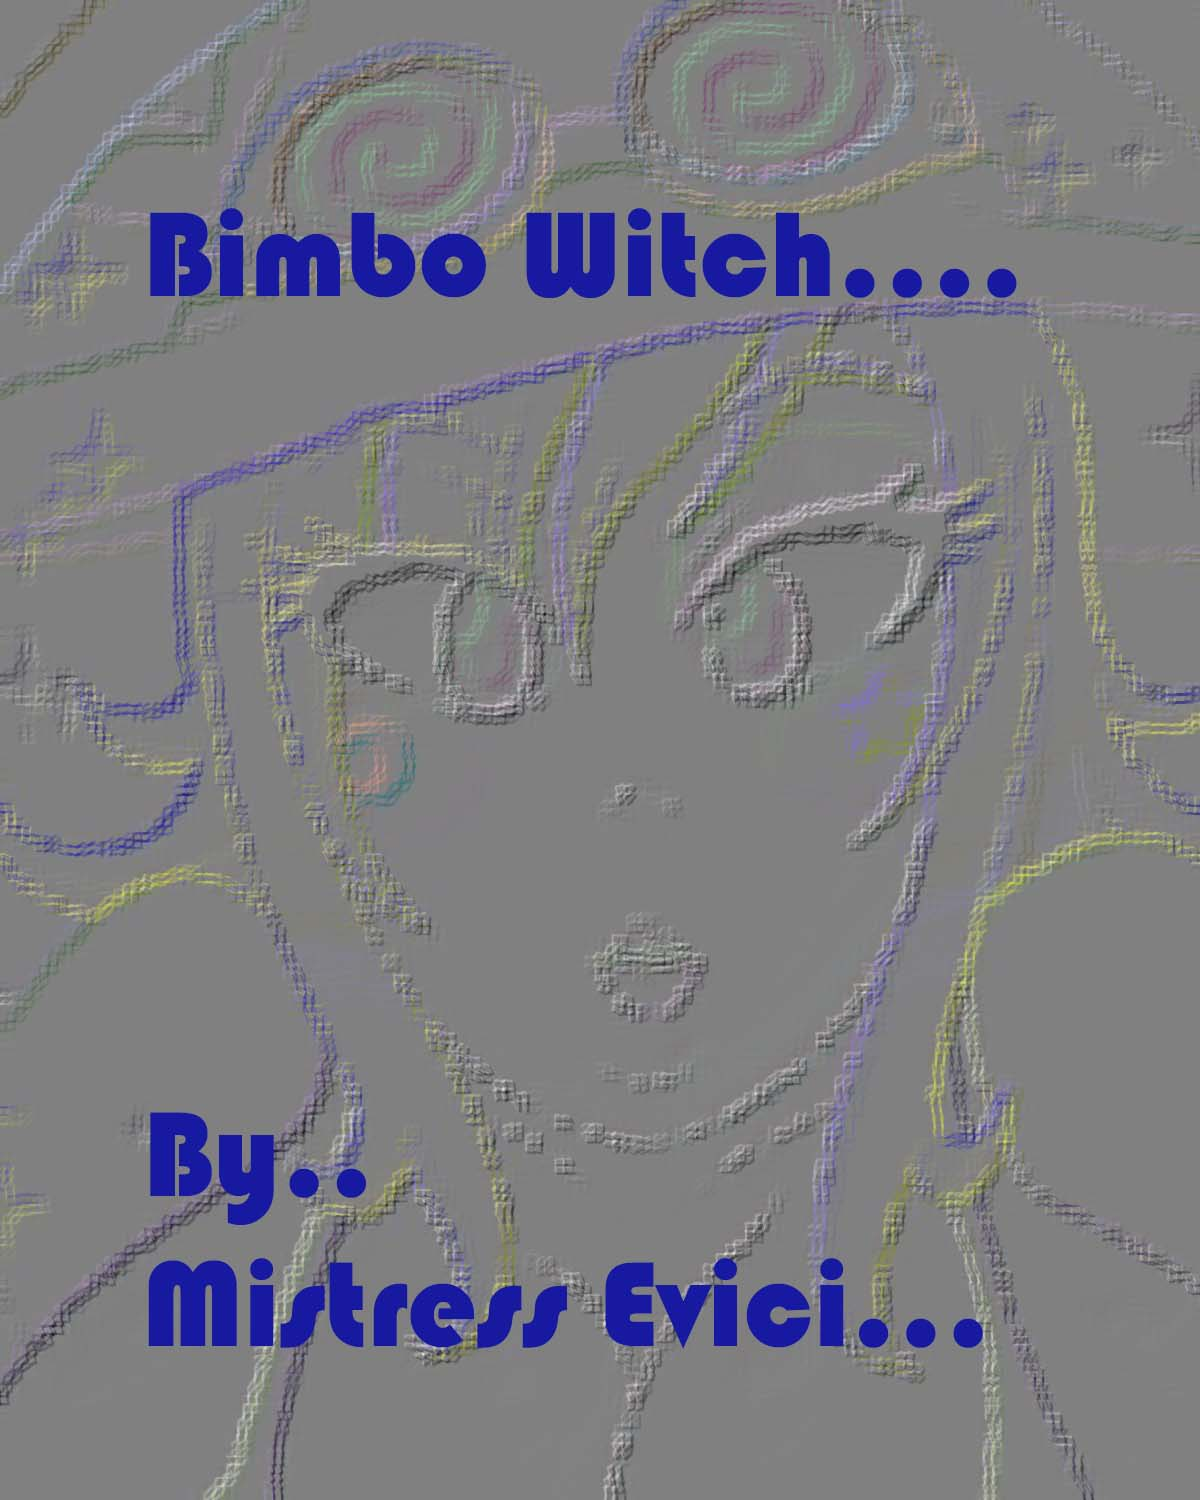 Bimbo Witch